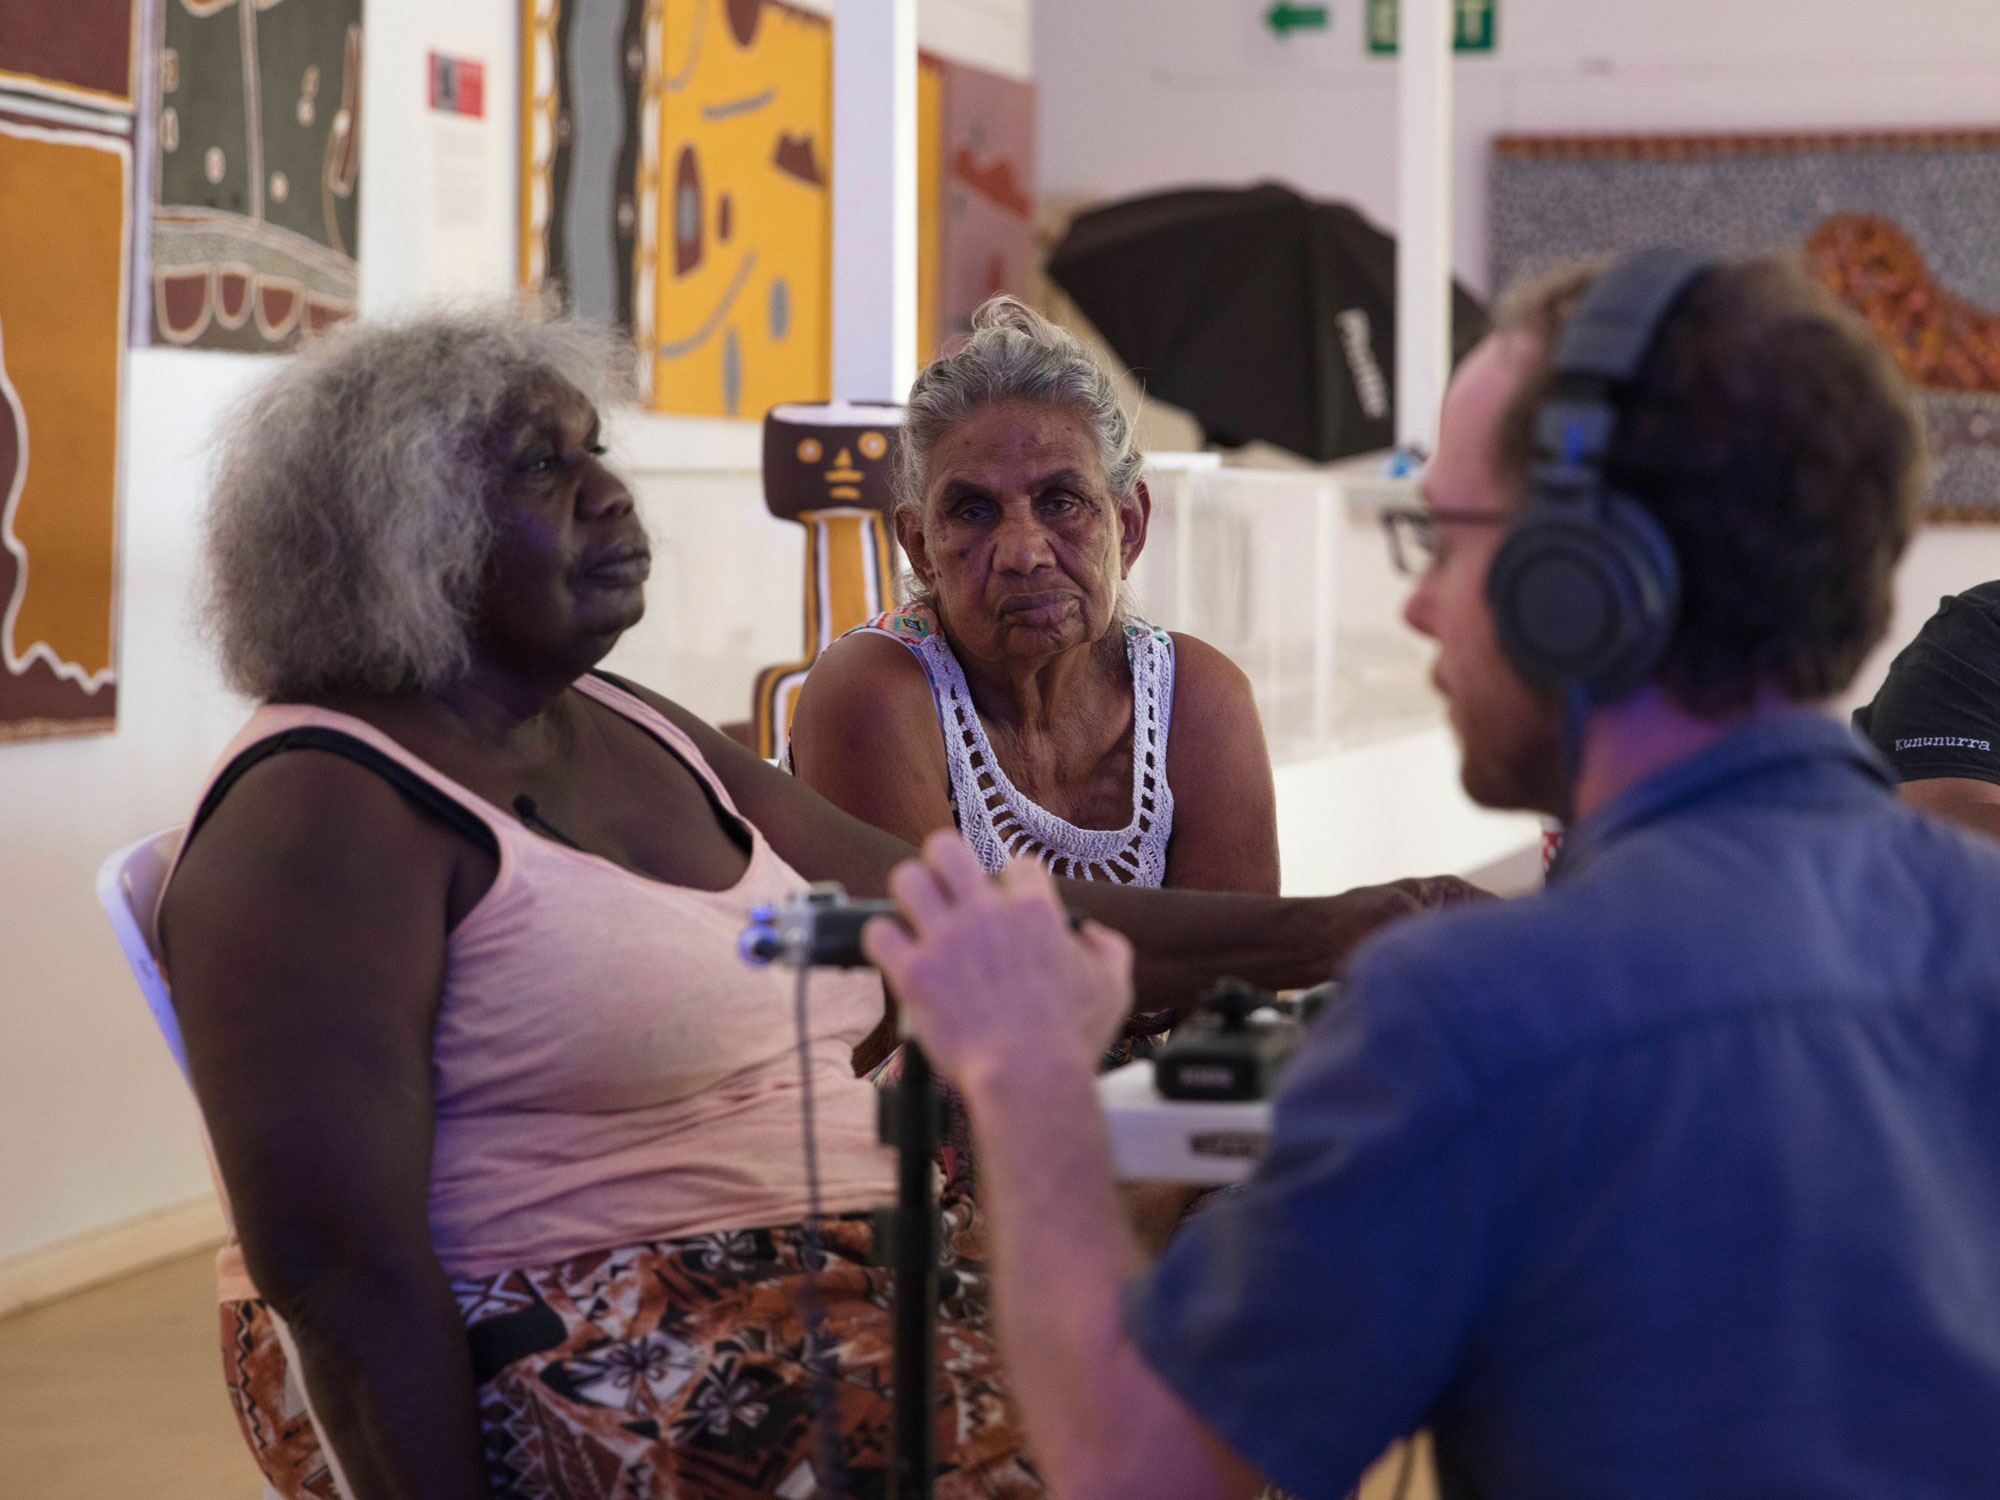 Miriwoong Elders Agnes Yamboong Armstrong and Peggy Griffiths-Madij being interviewed by Sohan Ariel Hayes. Image by Glenn Iseger Pilkington